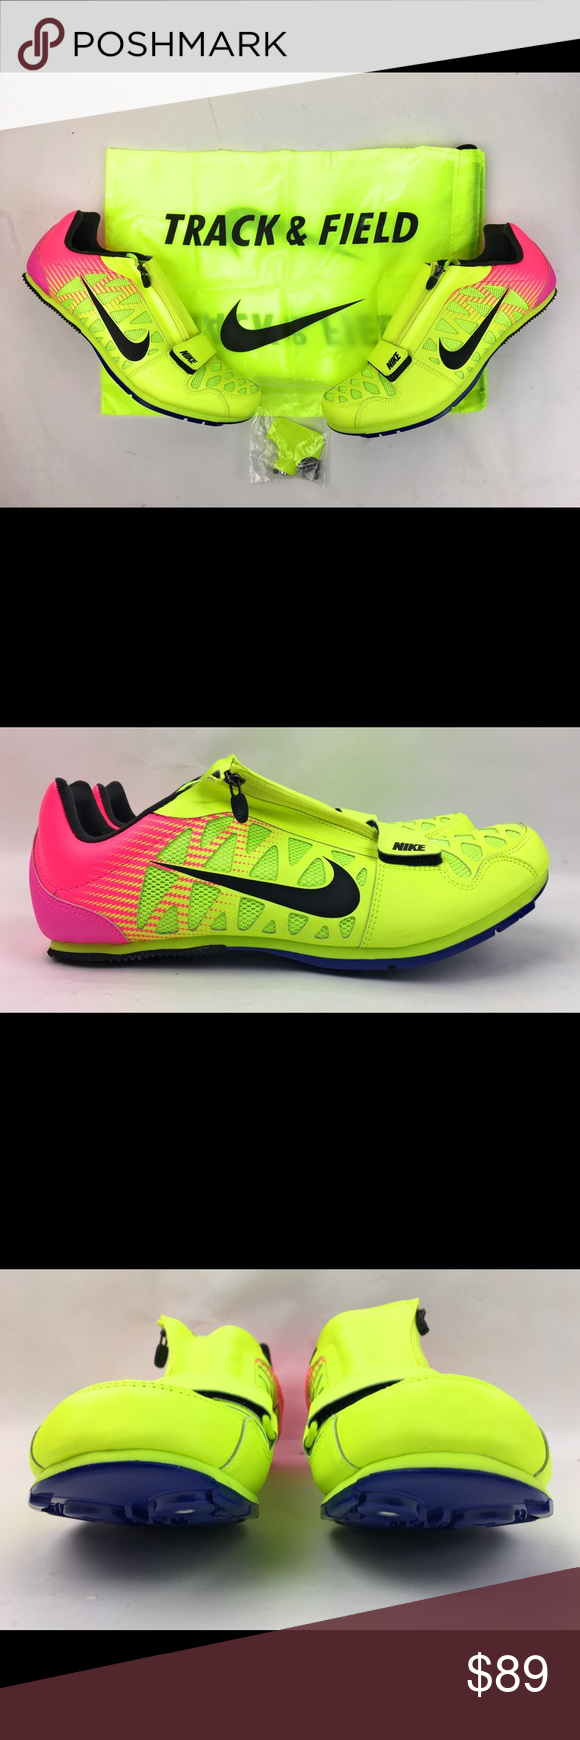 separation shoes ce93e 8c00a Nike Zoom LJ 4 Long Jump Track Shoes Volt Sz 10.5 Nike Zoom LJ 4 Long Jump  Track Shoes Spikes Sz 10.5 Volt Pink Black 415339-999 New without box Comes  with ...